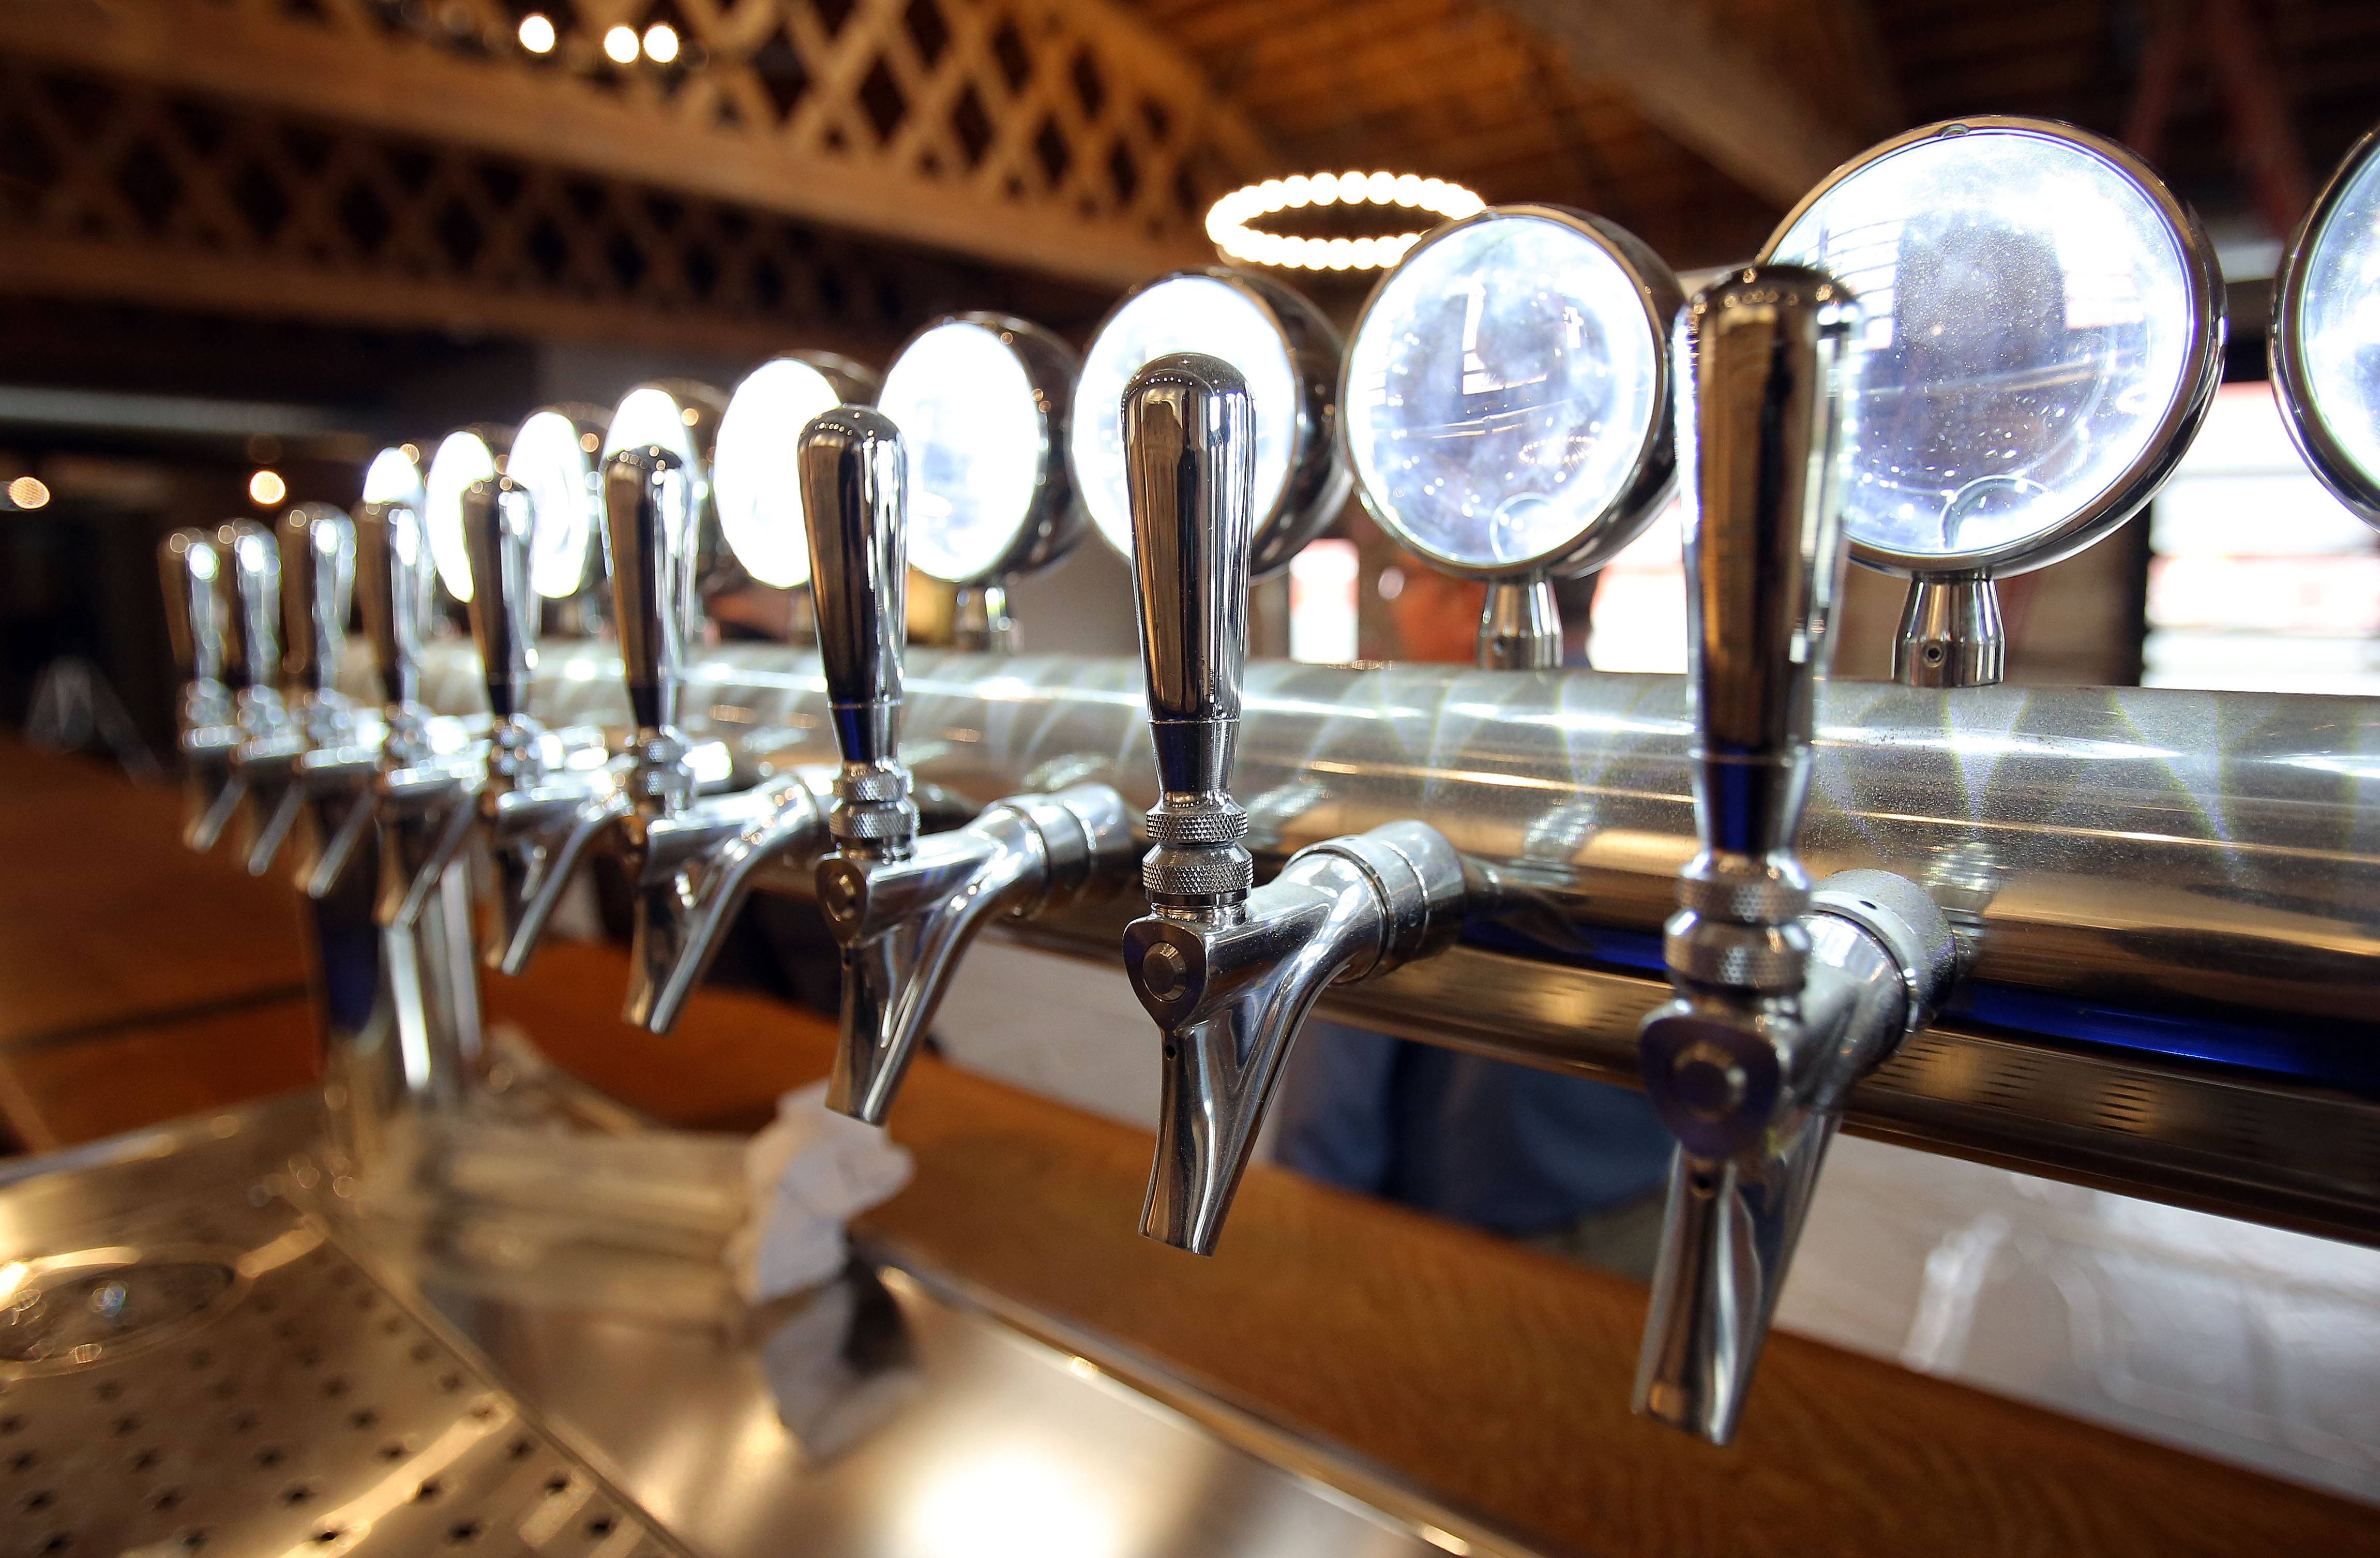 The new Mickey Finn's location in Libertyville will feature up to 14 tap beers brewed on site.